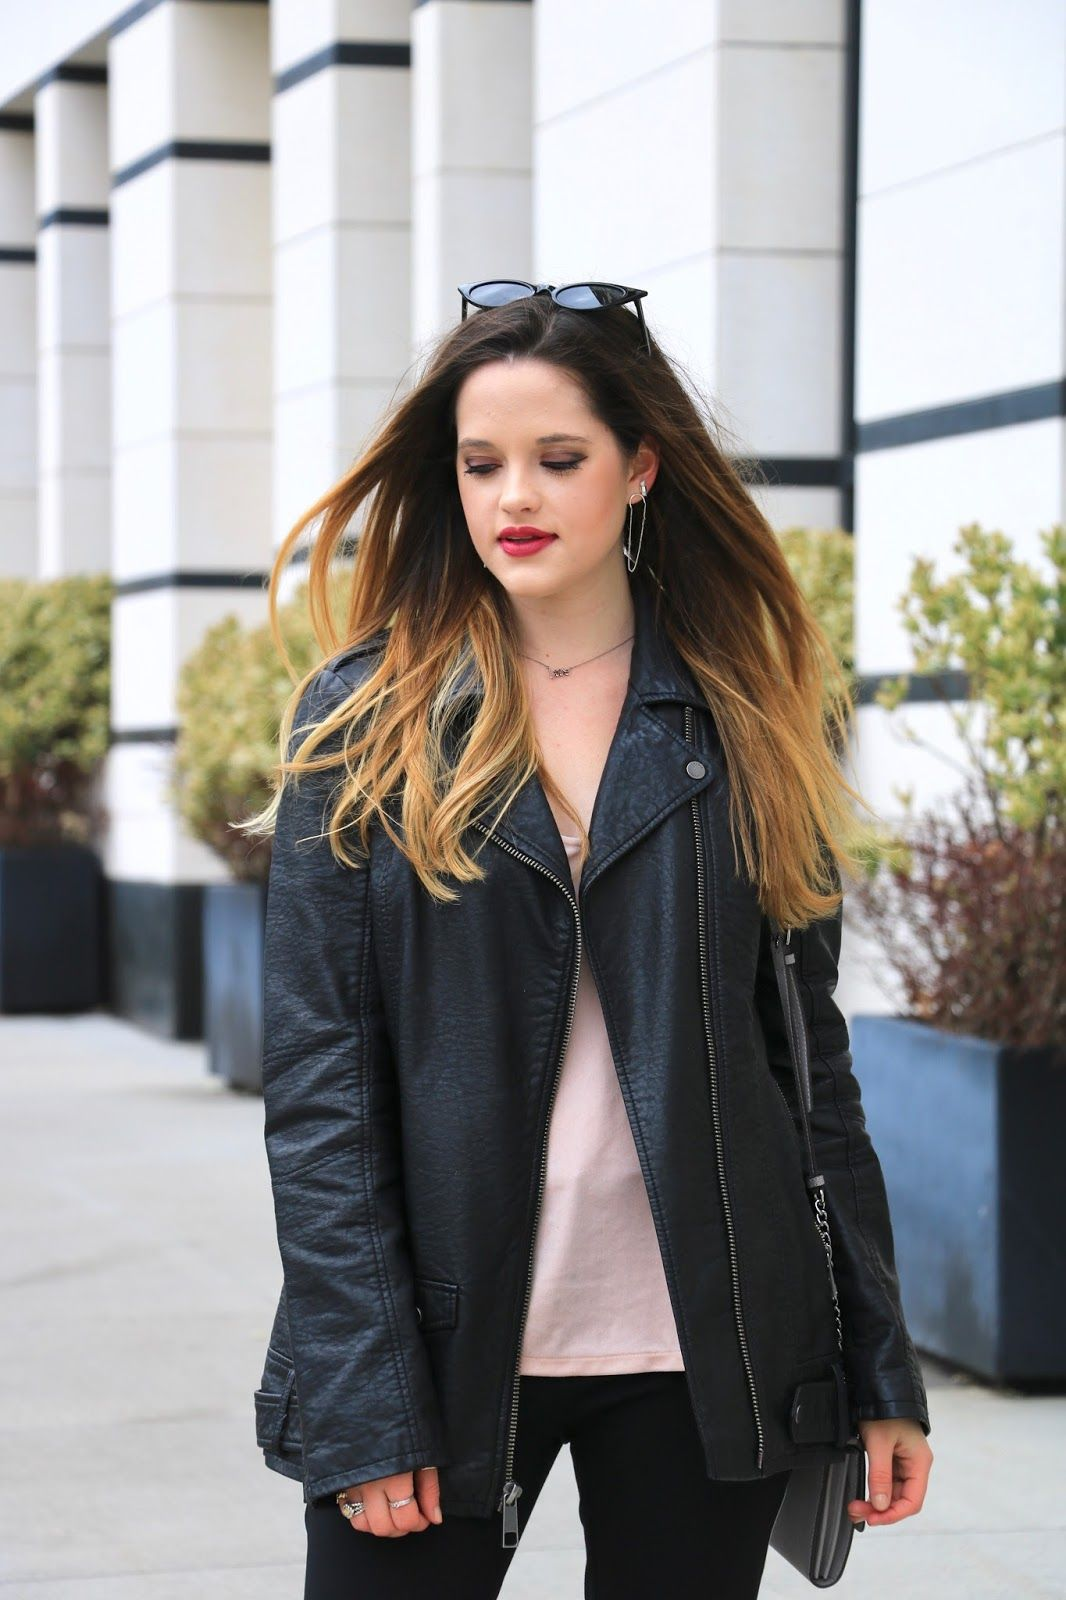 How to wear an oversized leather jacket. Jackets